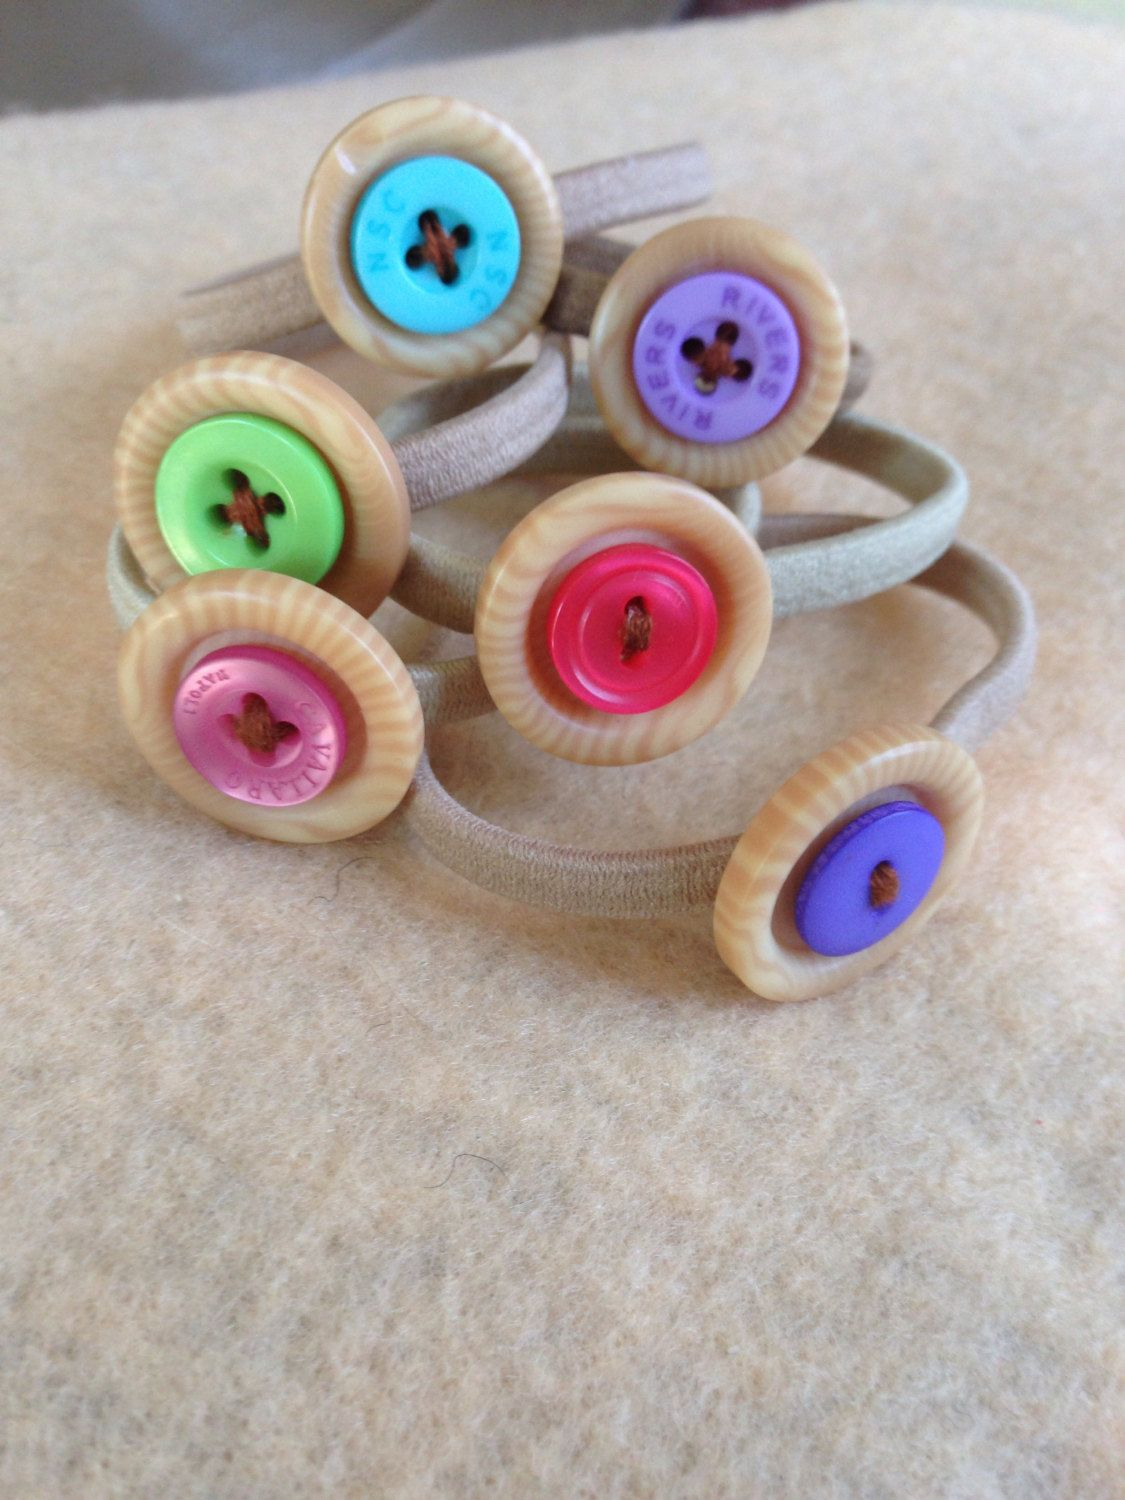 Hair bow button accessories - Hair Accessories Set Of 6 Black Hair Bands With Natural Bright Button Detailing